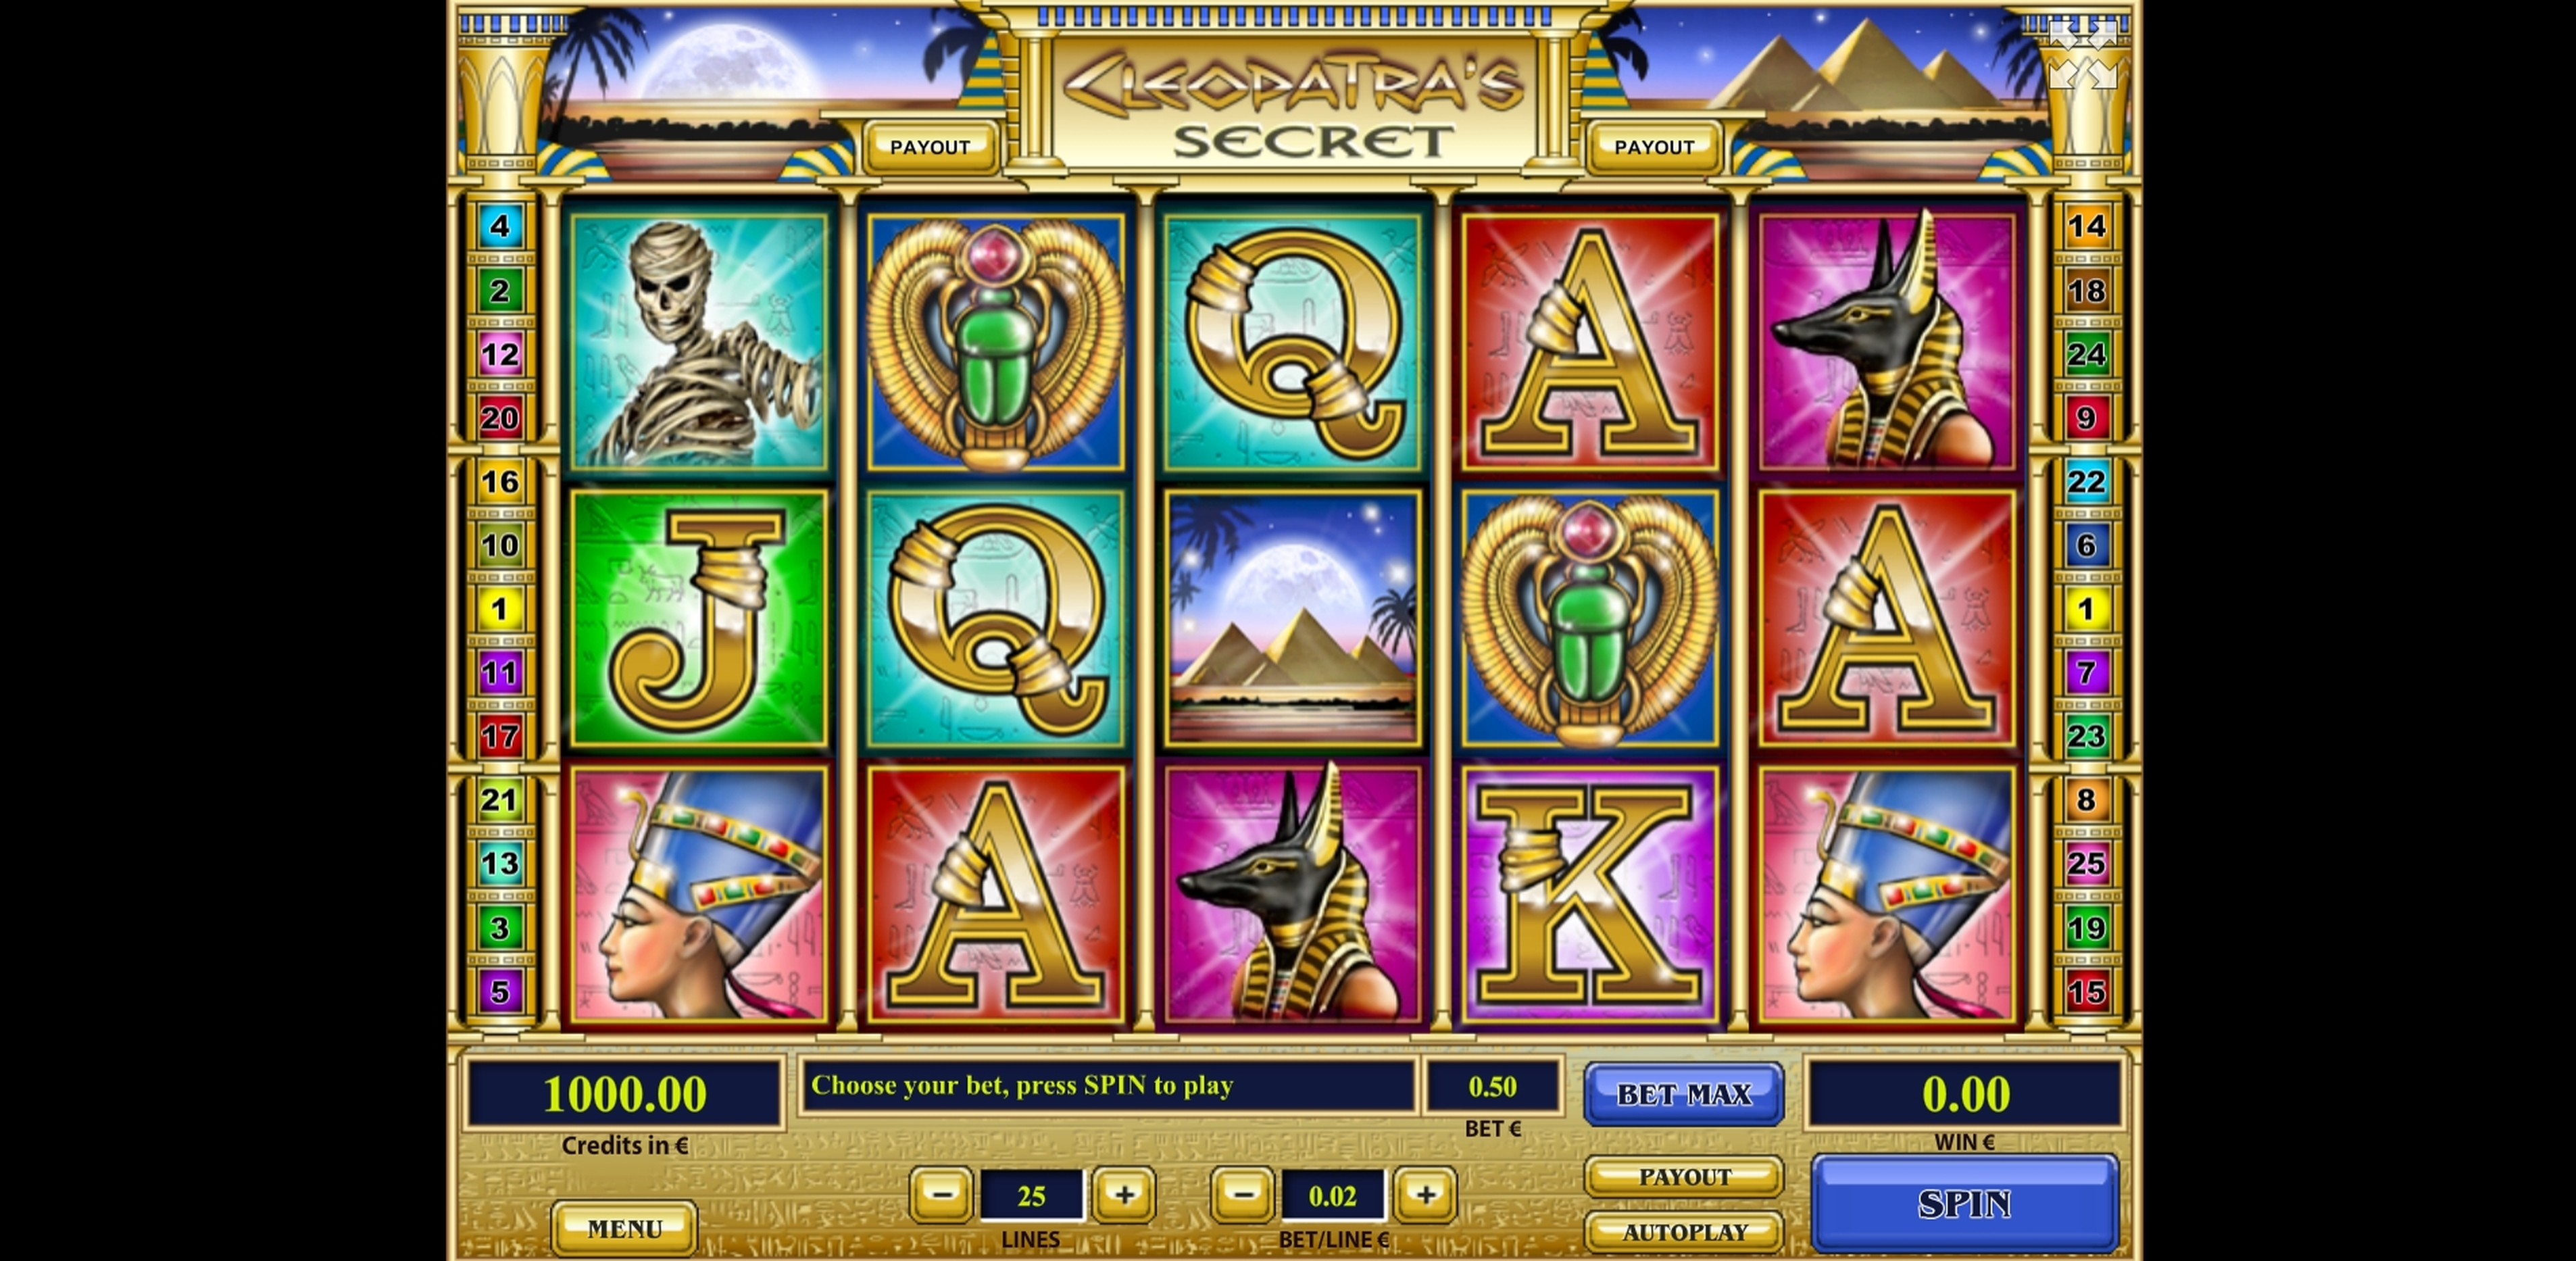 Reels in Cleopatra's Secret Slot Game by Tom Horn Gaming